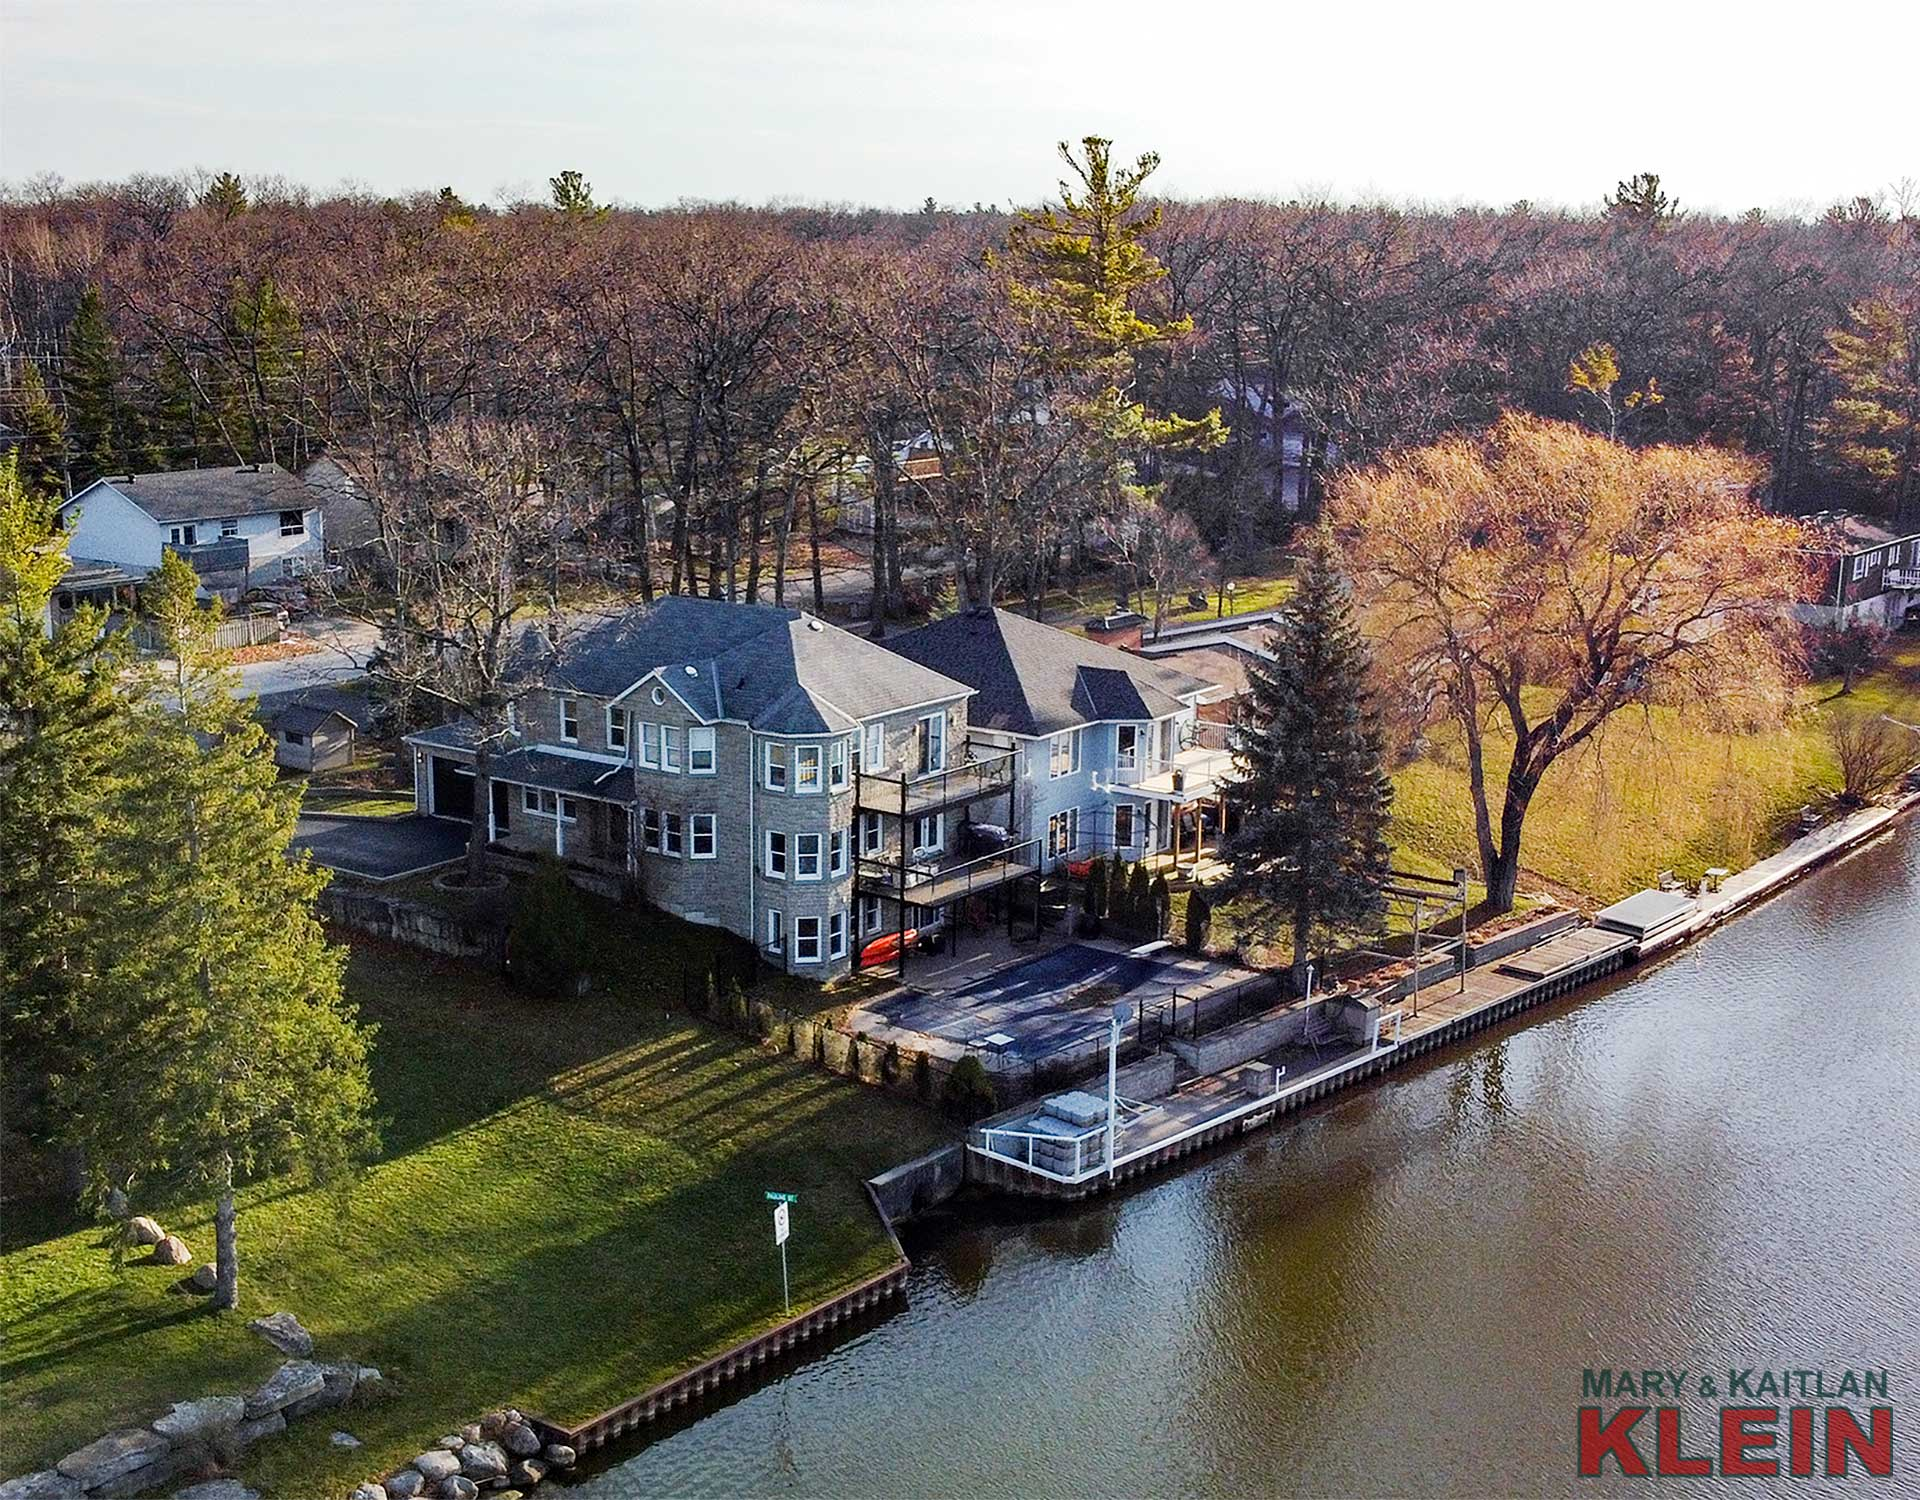 74 EDGEWATER RD WASAGA BEACH ON L9Z 2W3, home for sale, klein